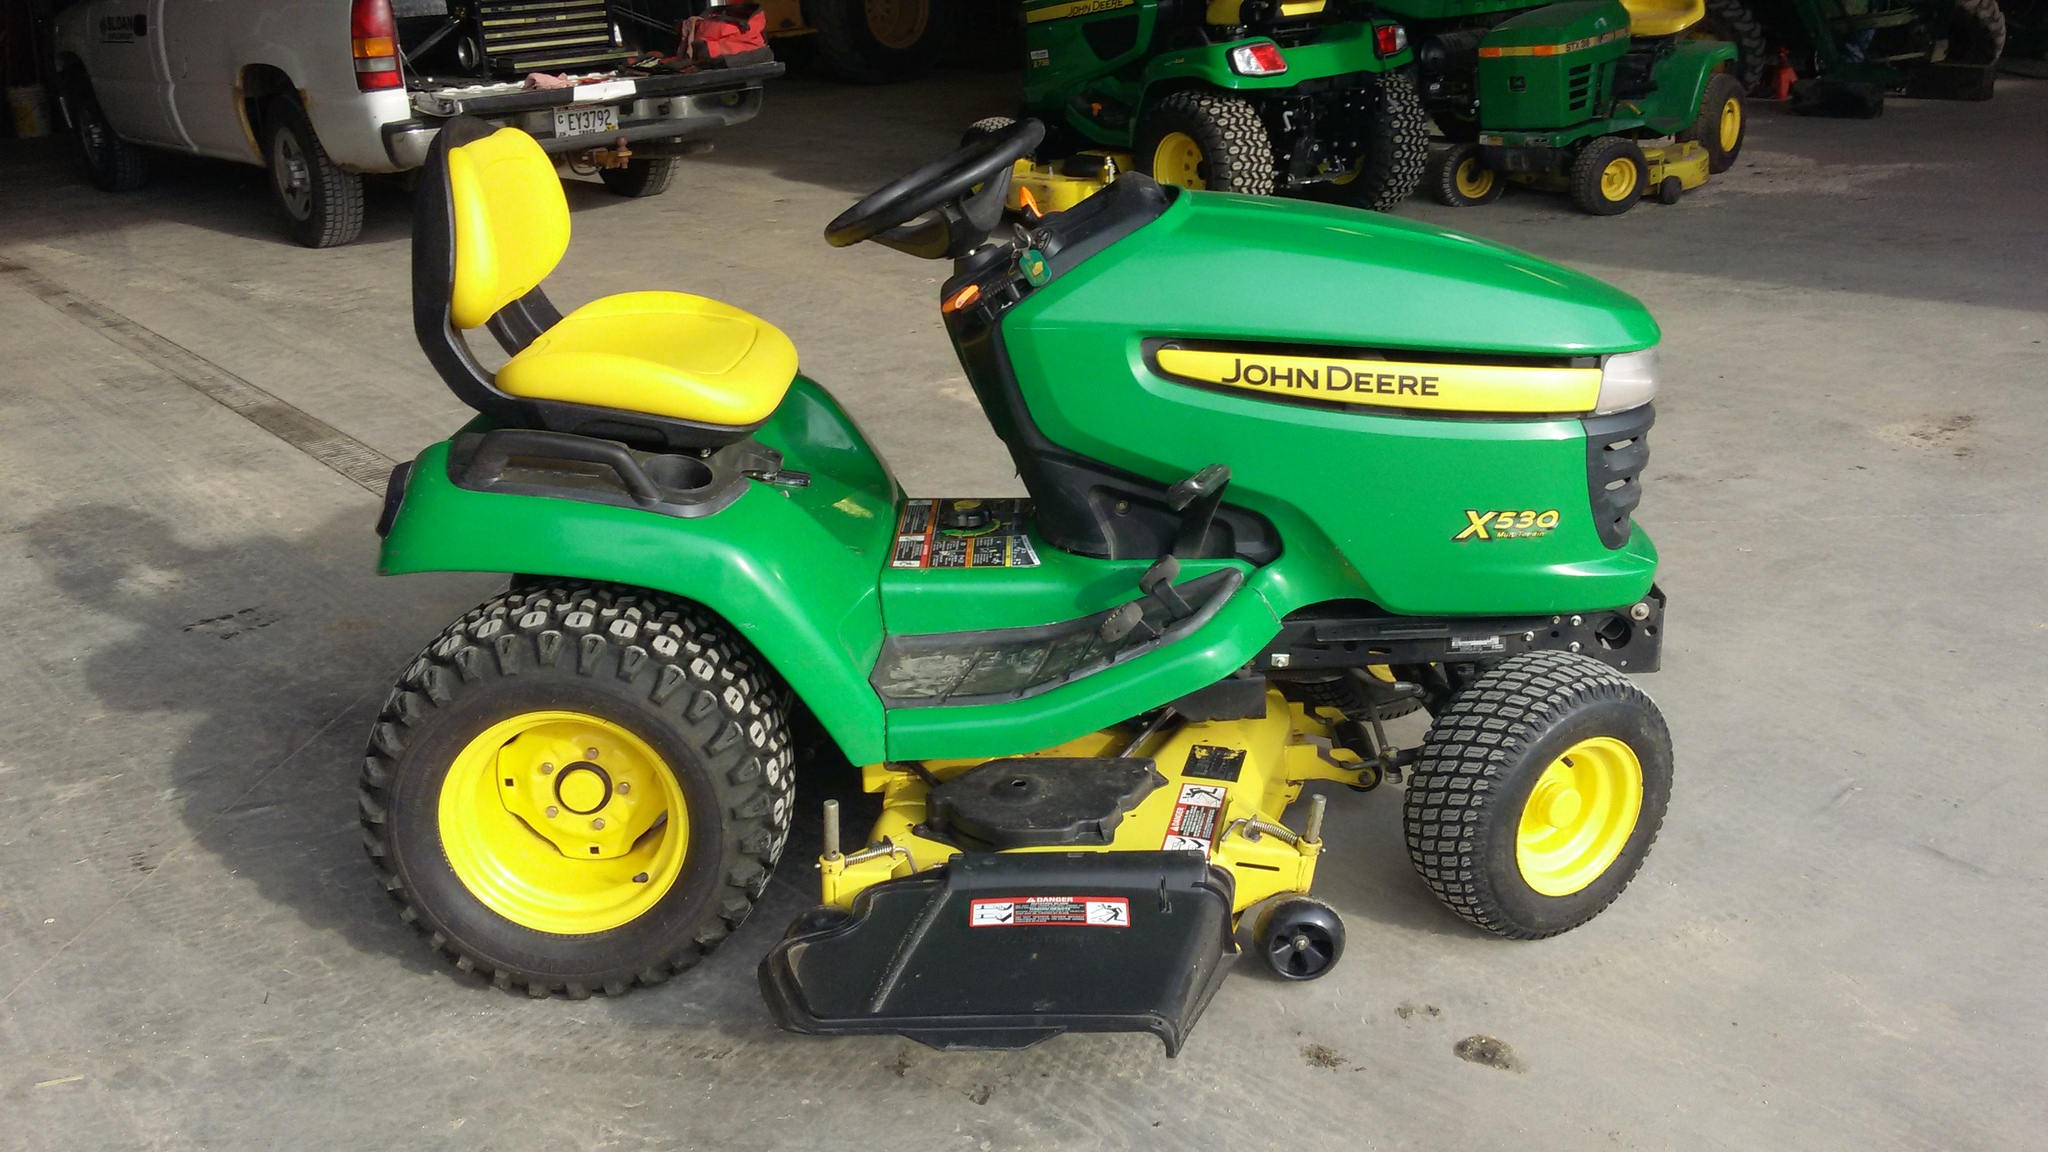 John deere x530 lawn garden tractors for sale 65425 for Garden machinery for sale